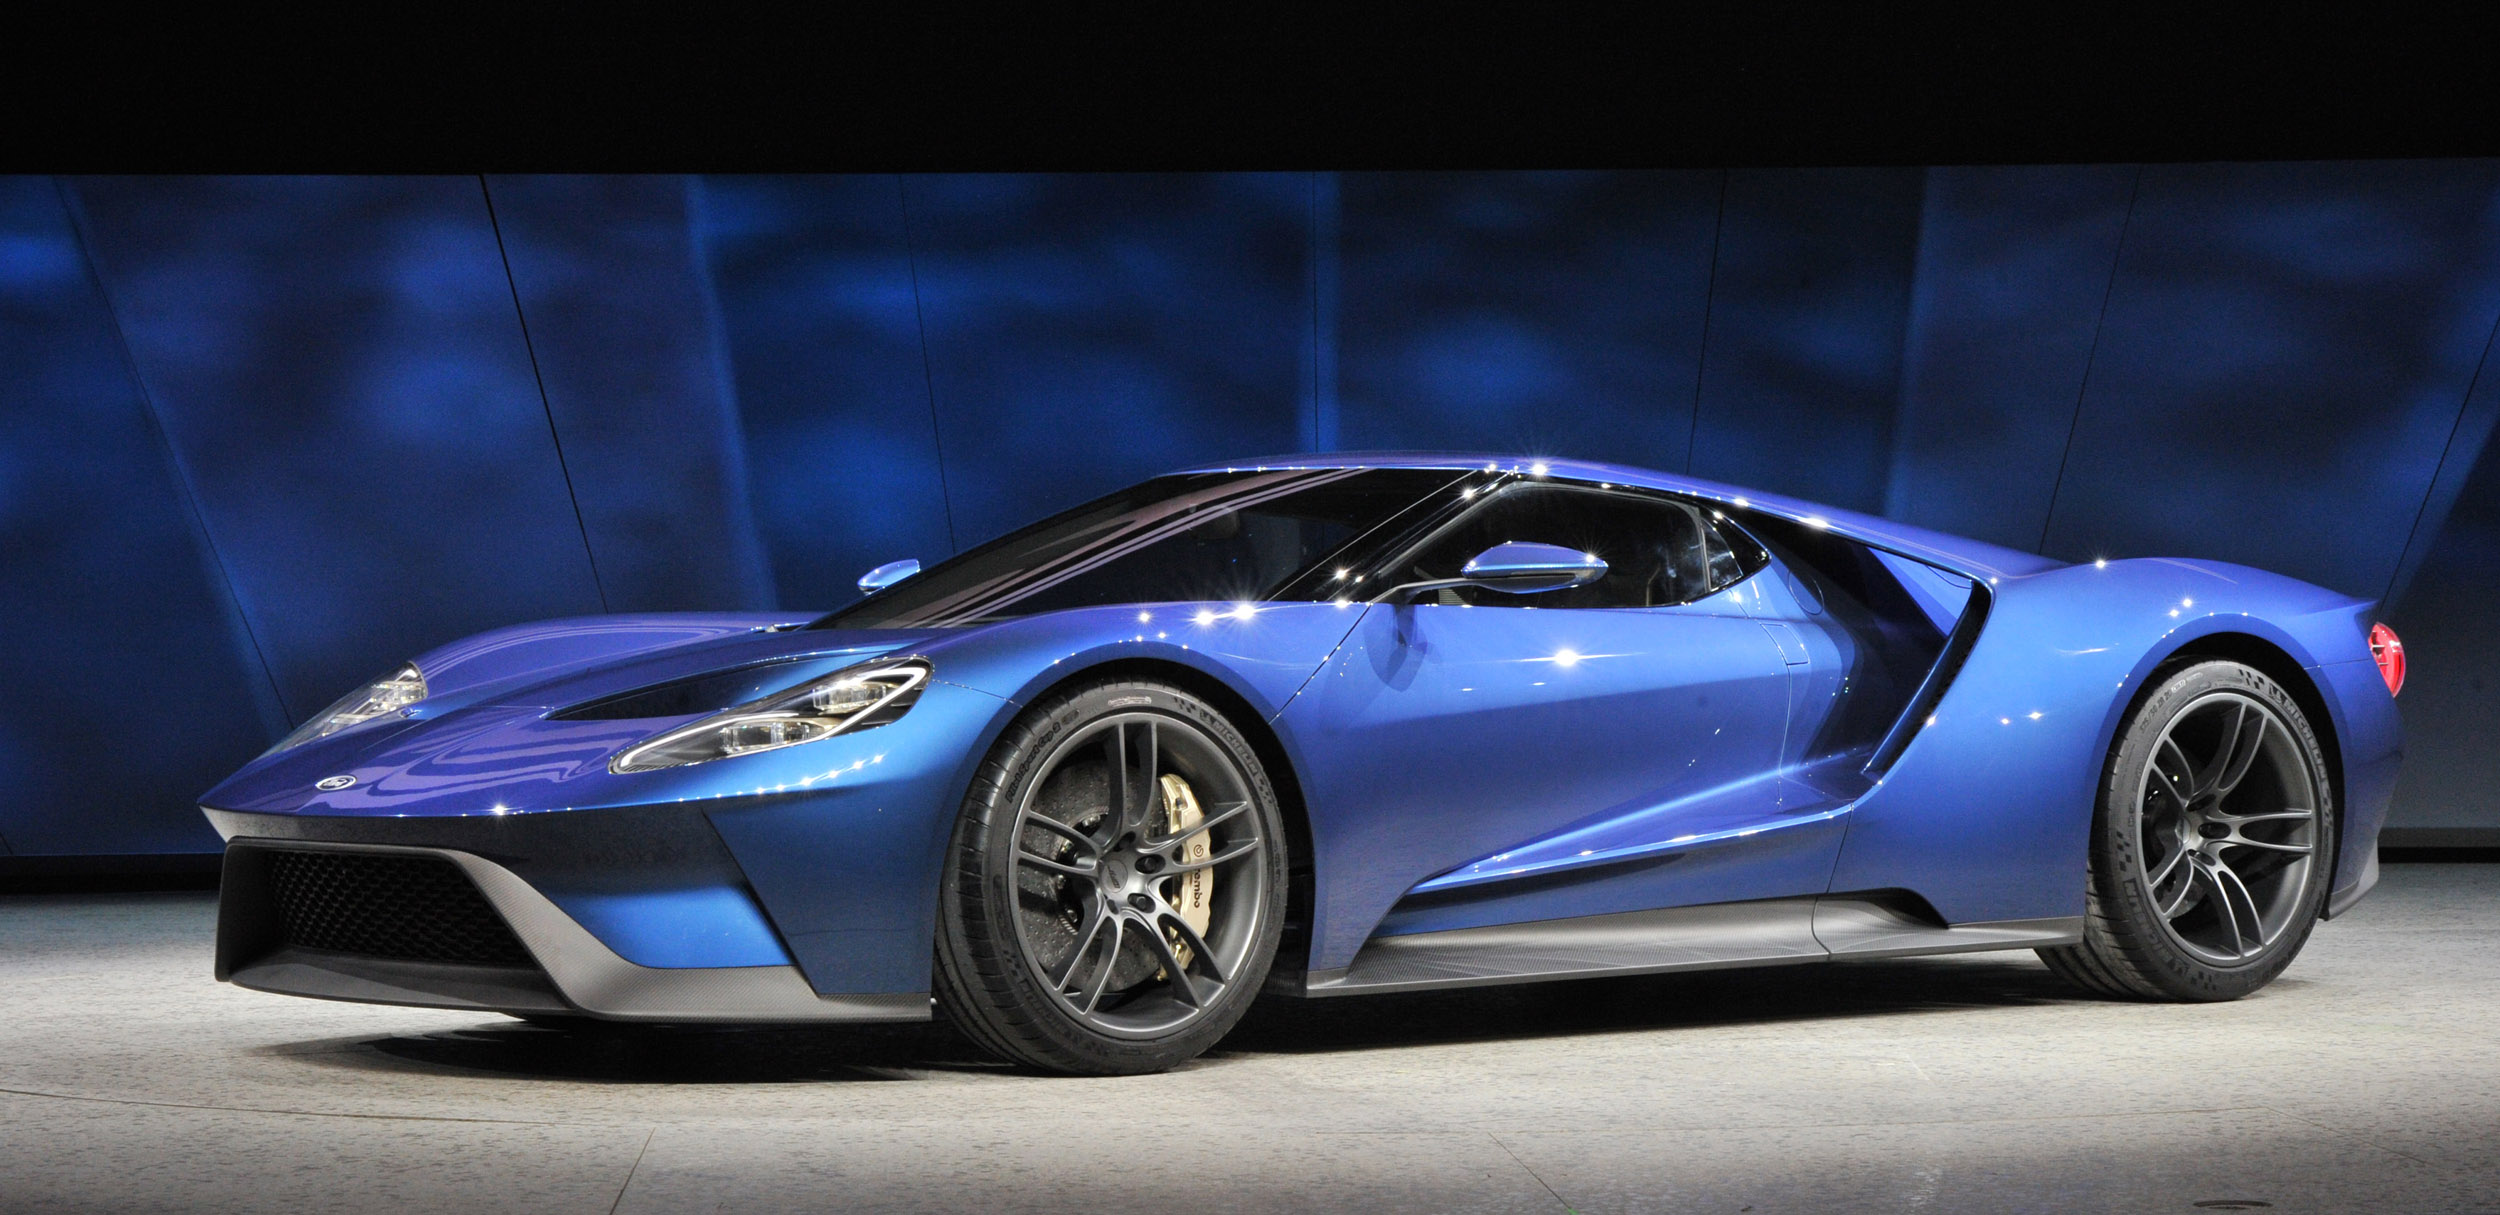 ALL-NEW FORD GT CARBON FIBER SUPERCAR